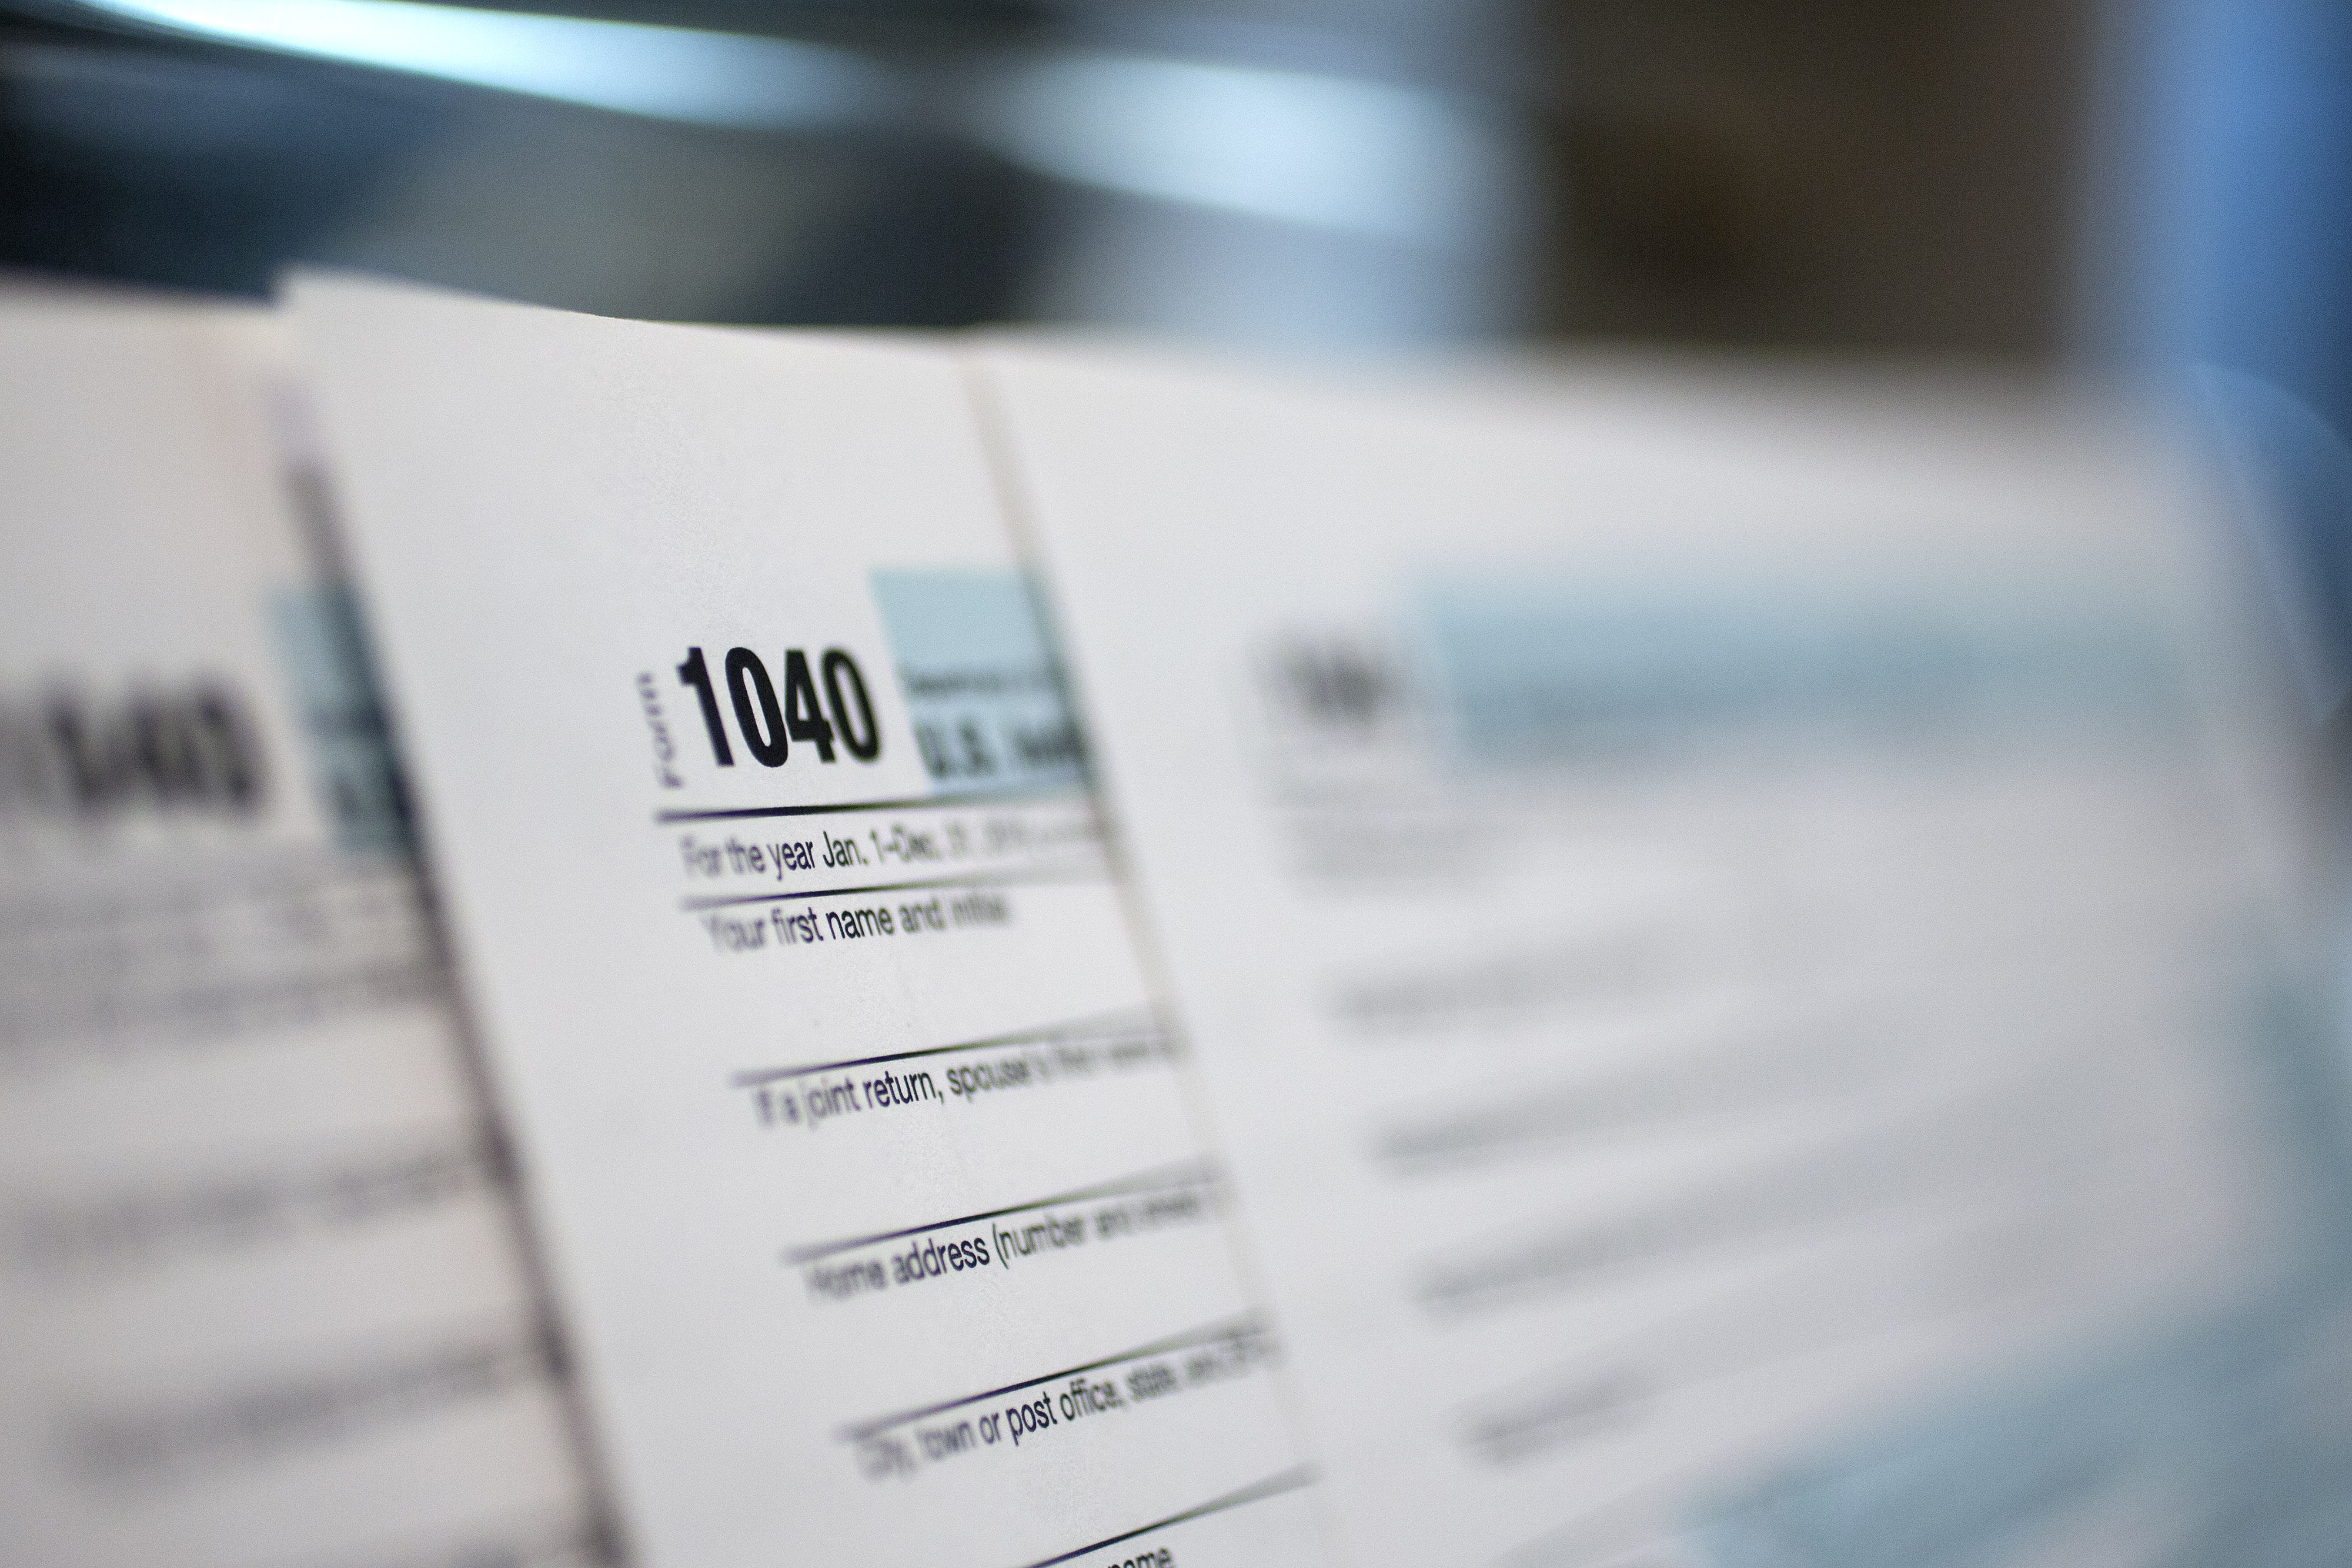 Images Of 1040 Forms As IRS Begins To Accept Tax Returns